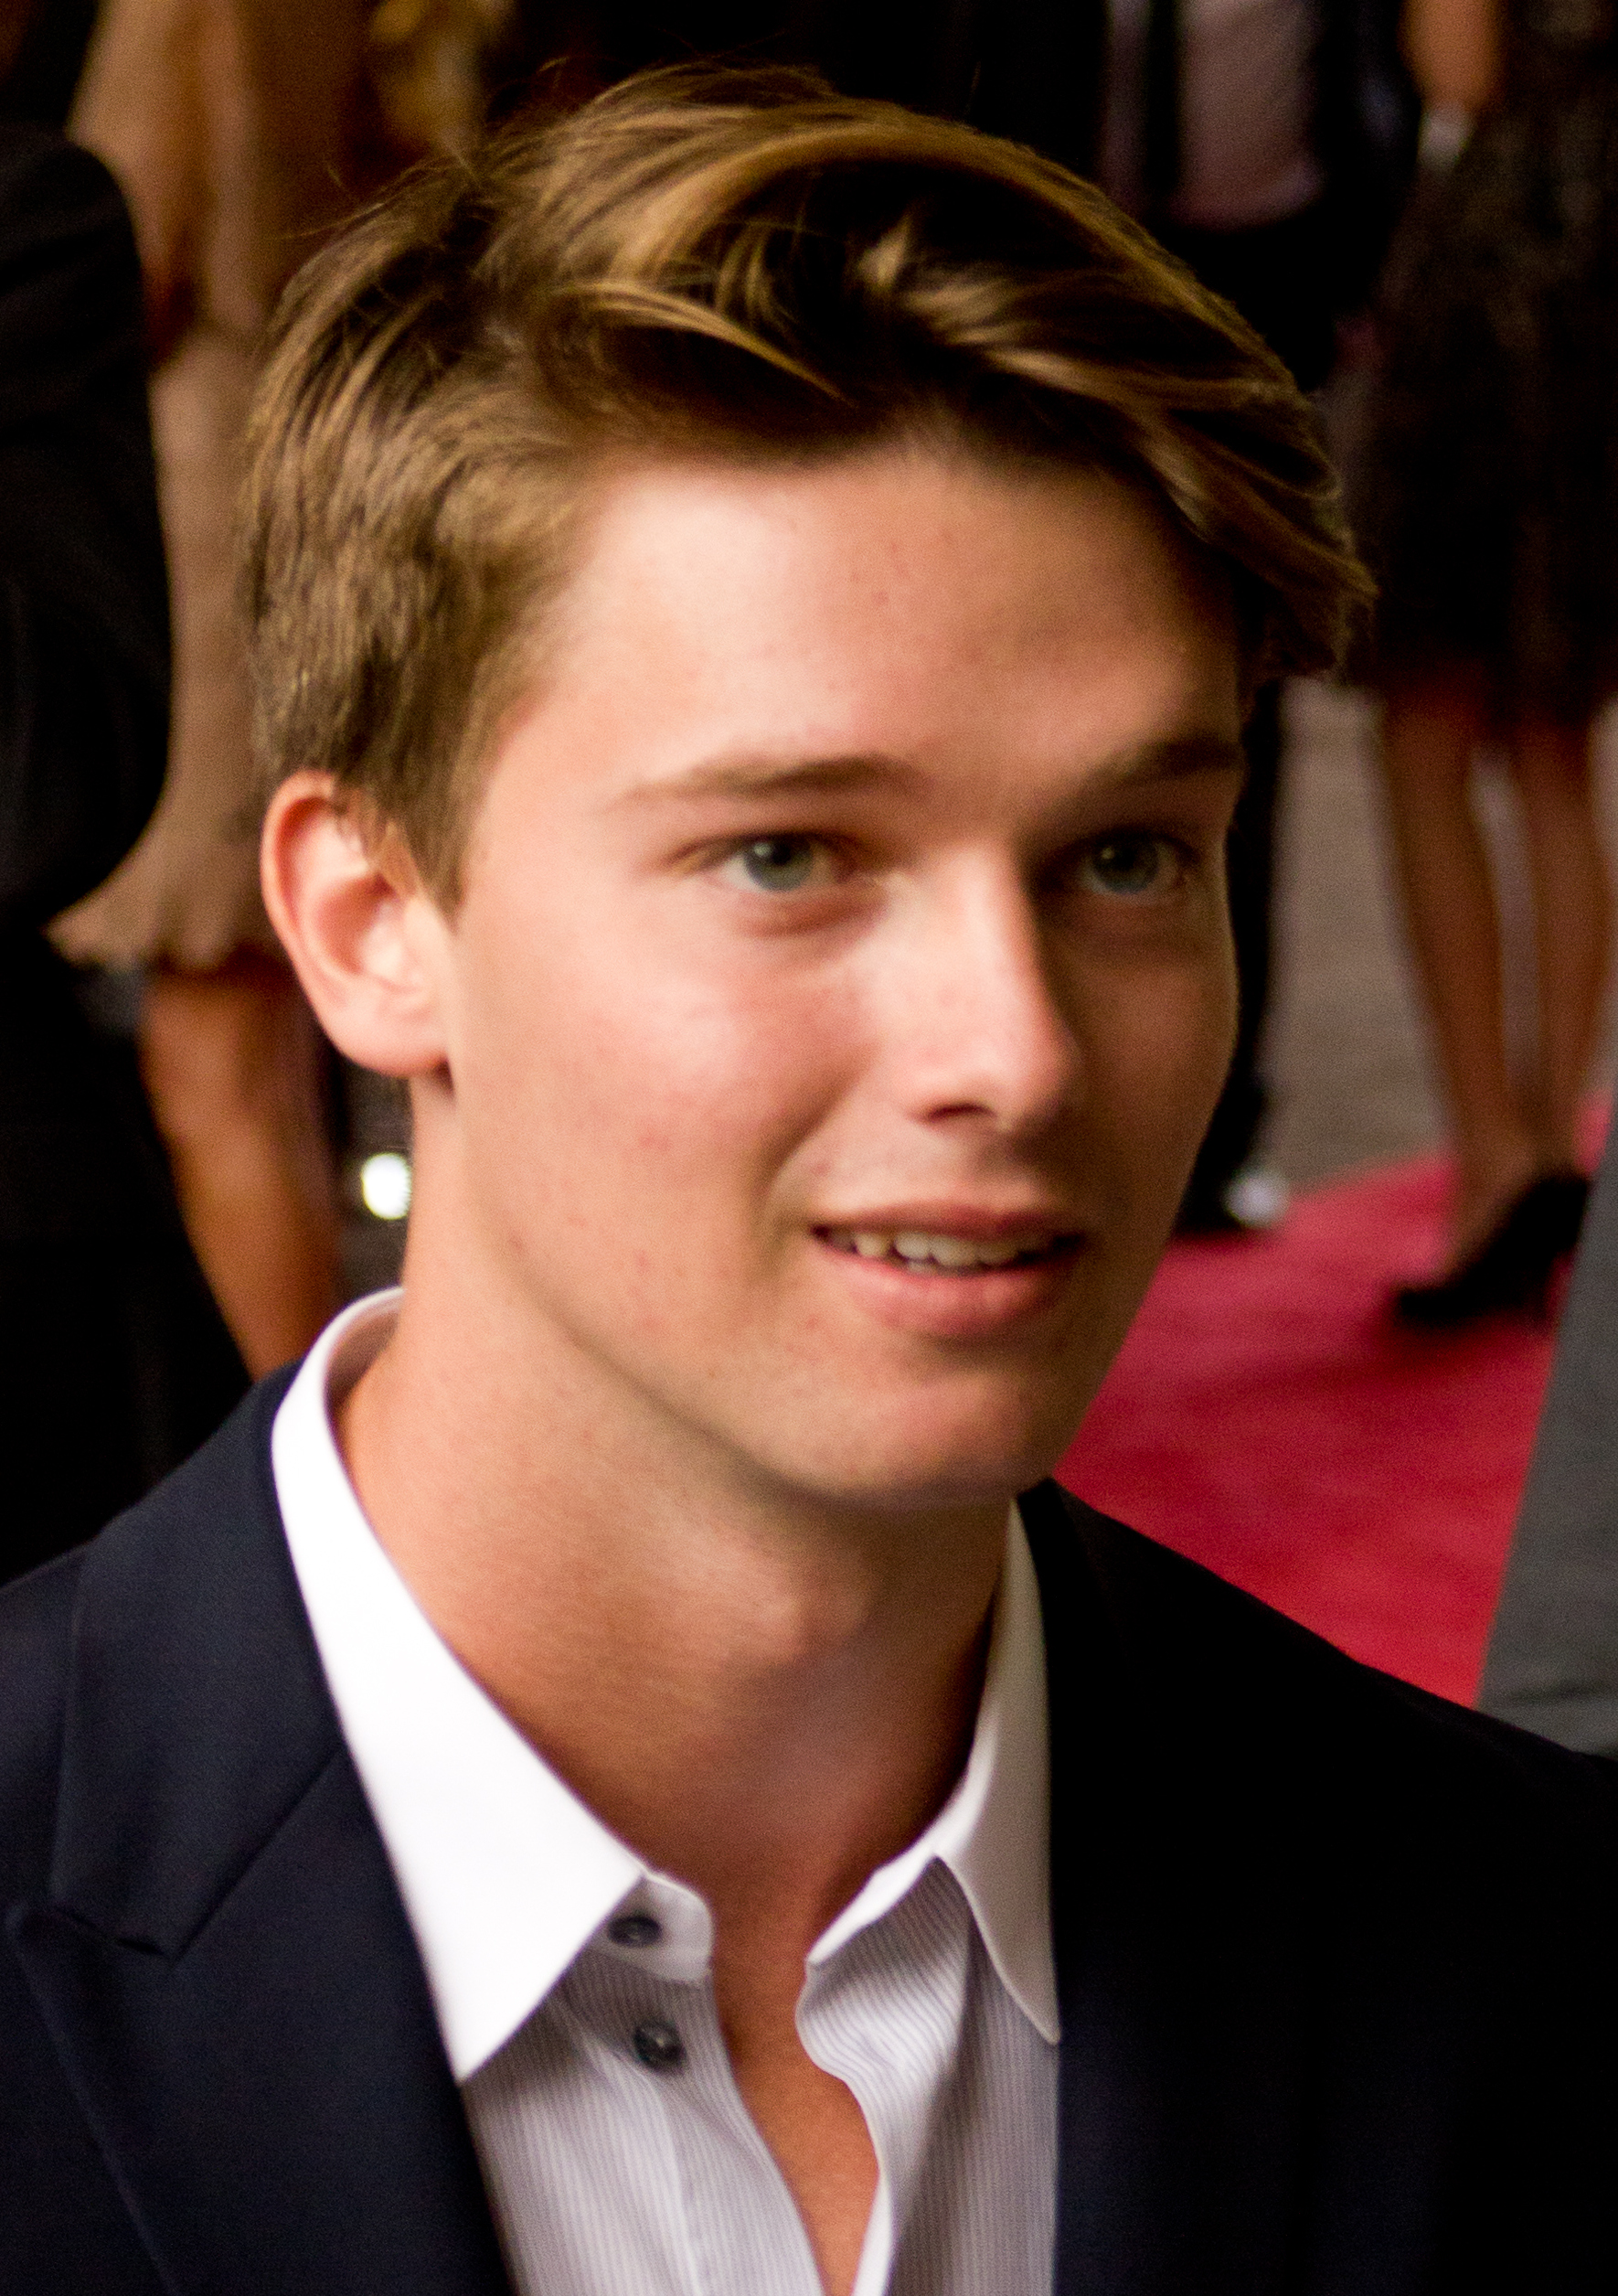 https://upload.wikimedia.org/wikipedia/commons/6/62/Patrick_Schwarzenegger_TIFF_2012.jpg